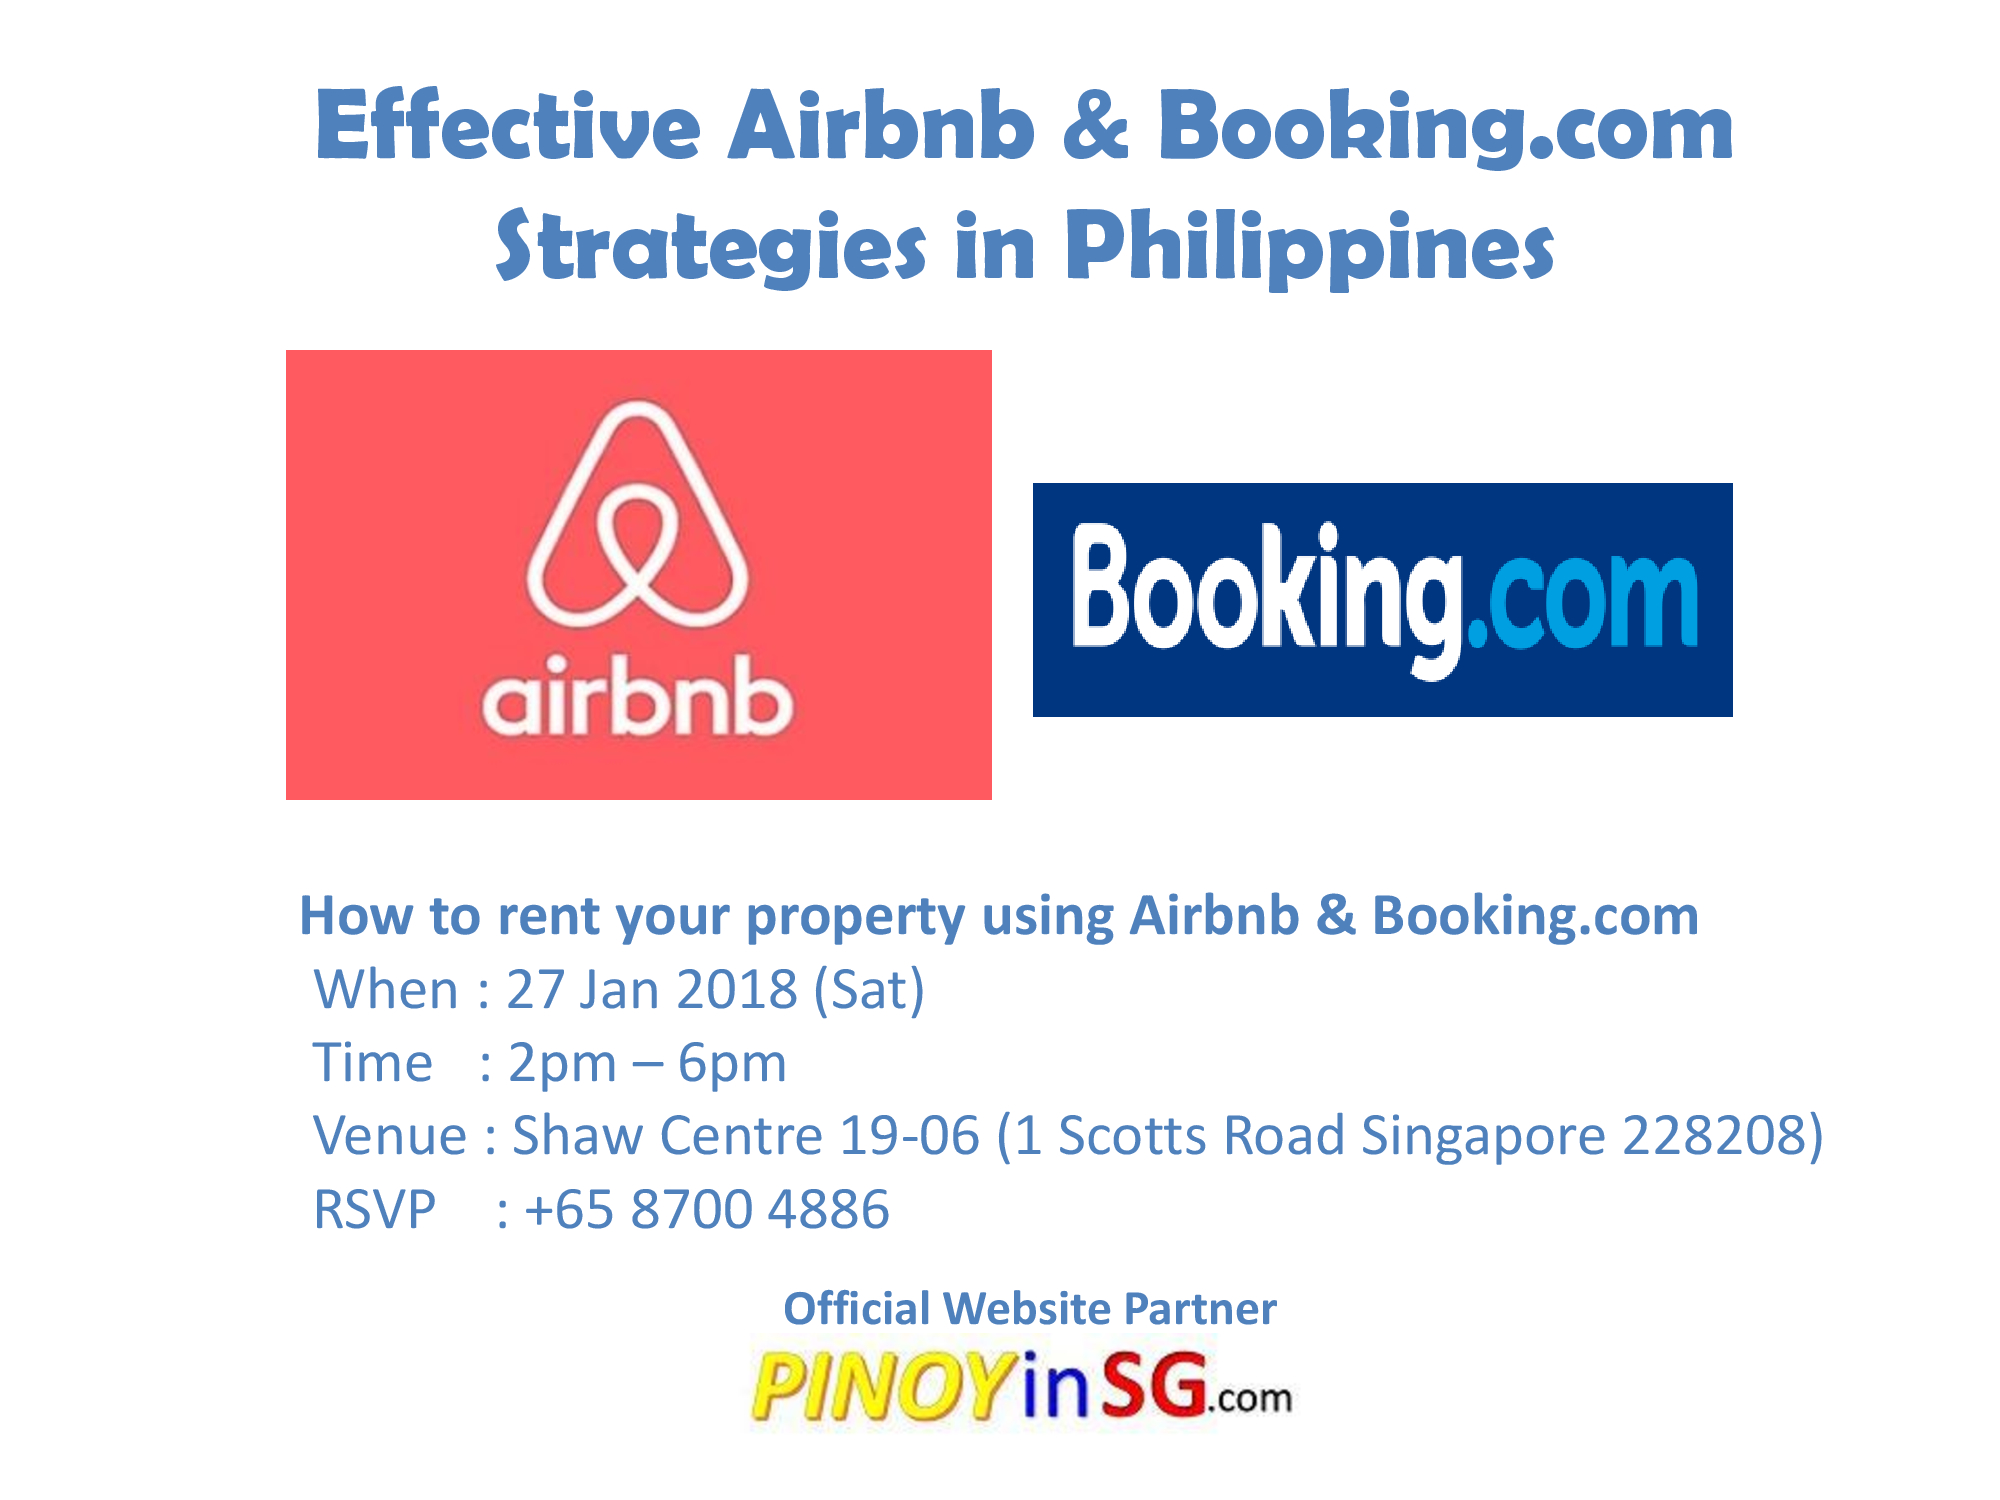 aibnb and booking.com